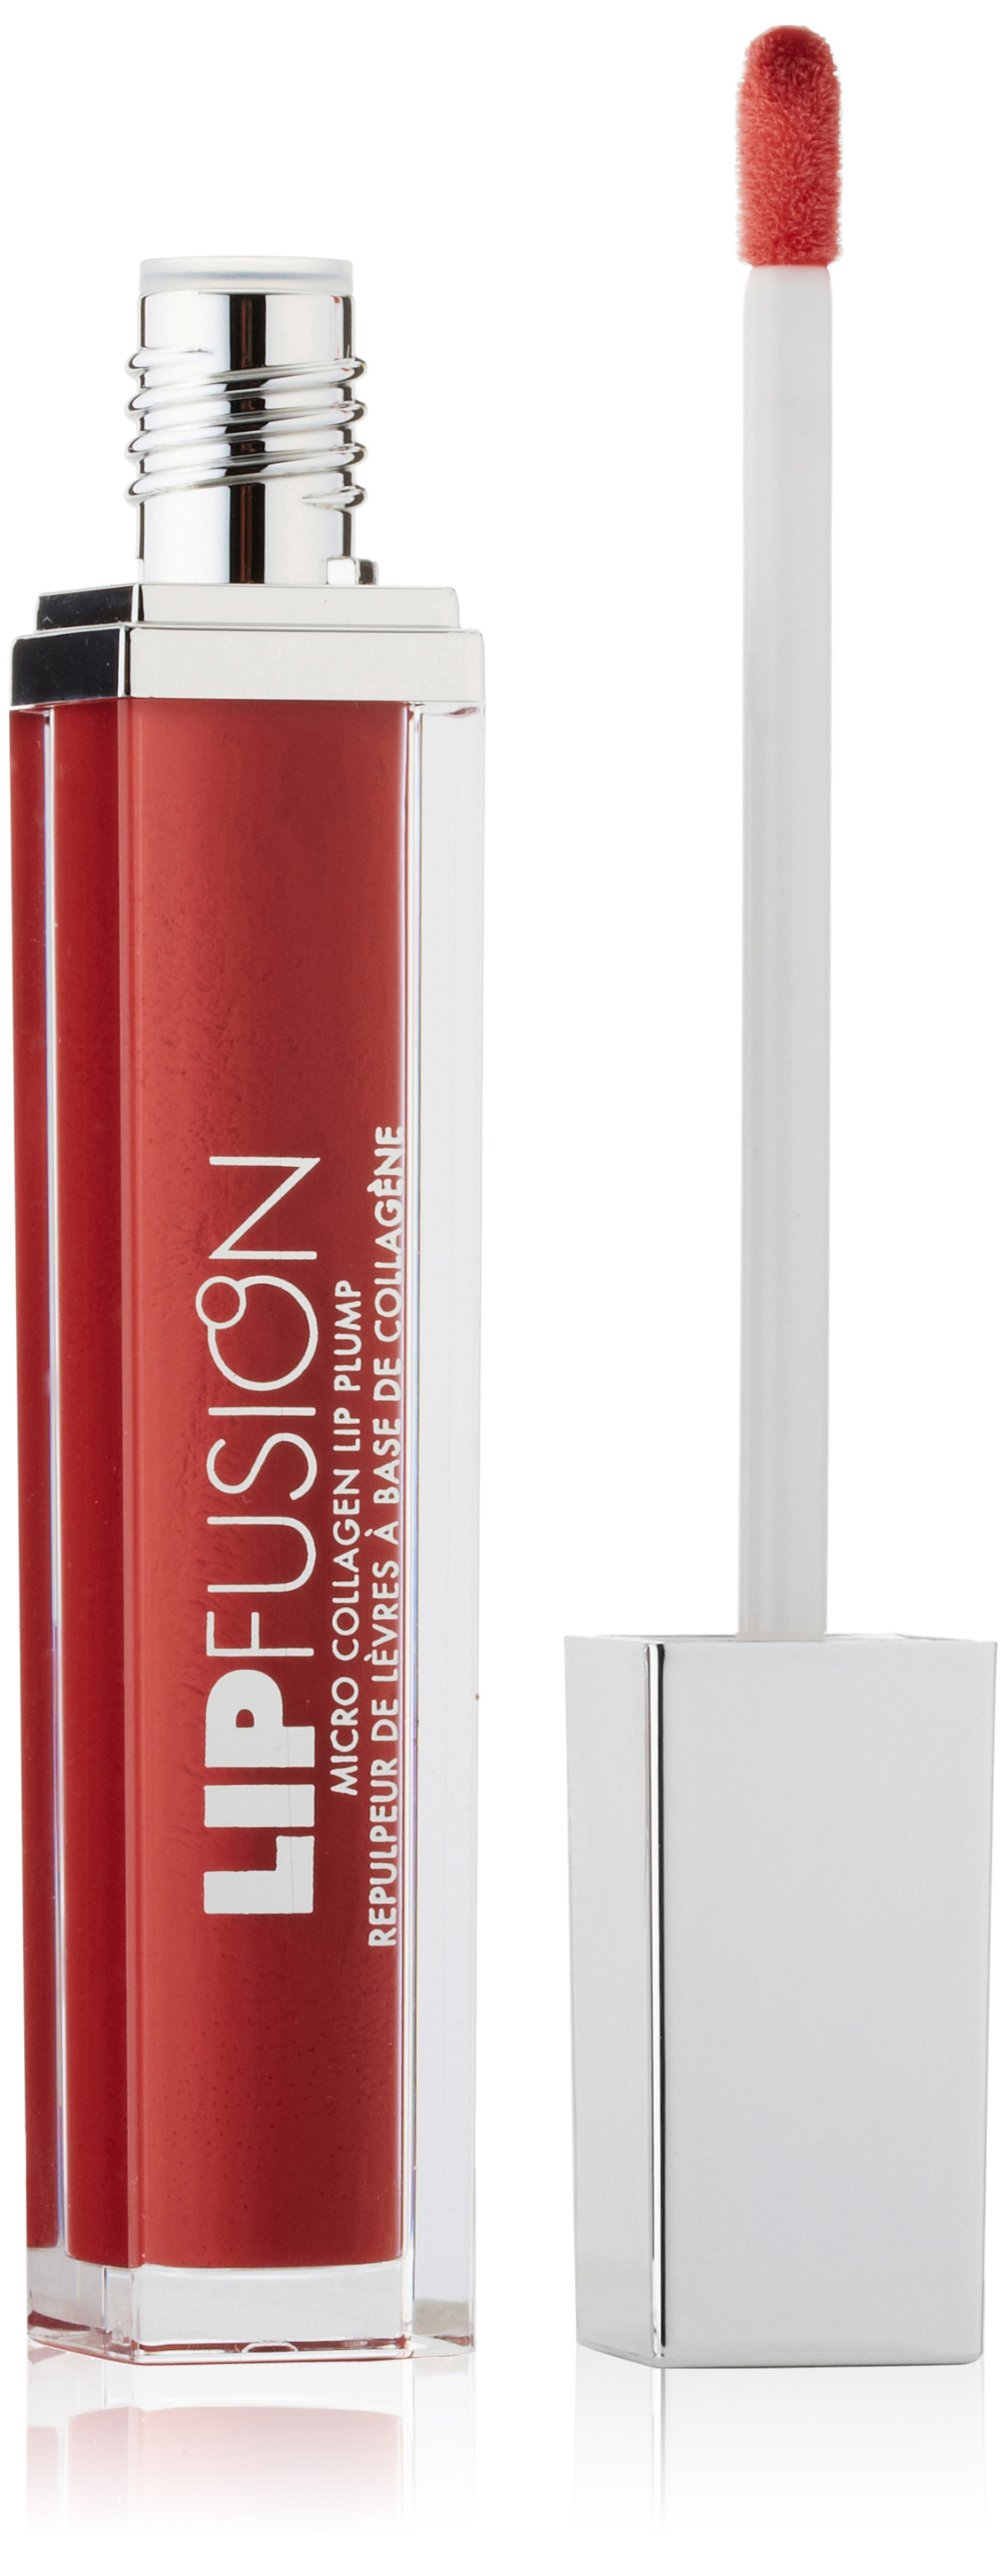 FusionBeauty LipFusion Micro-Injected Collagen Lip Plump Color Shine, Bloom